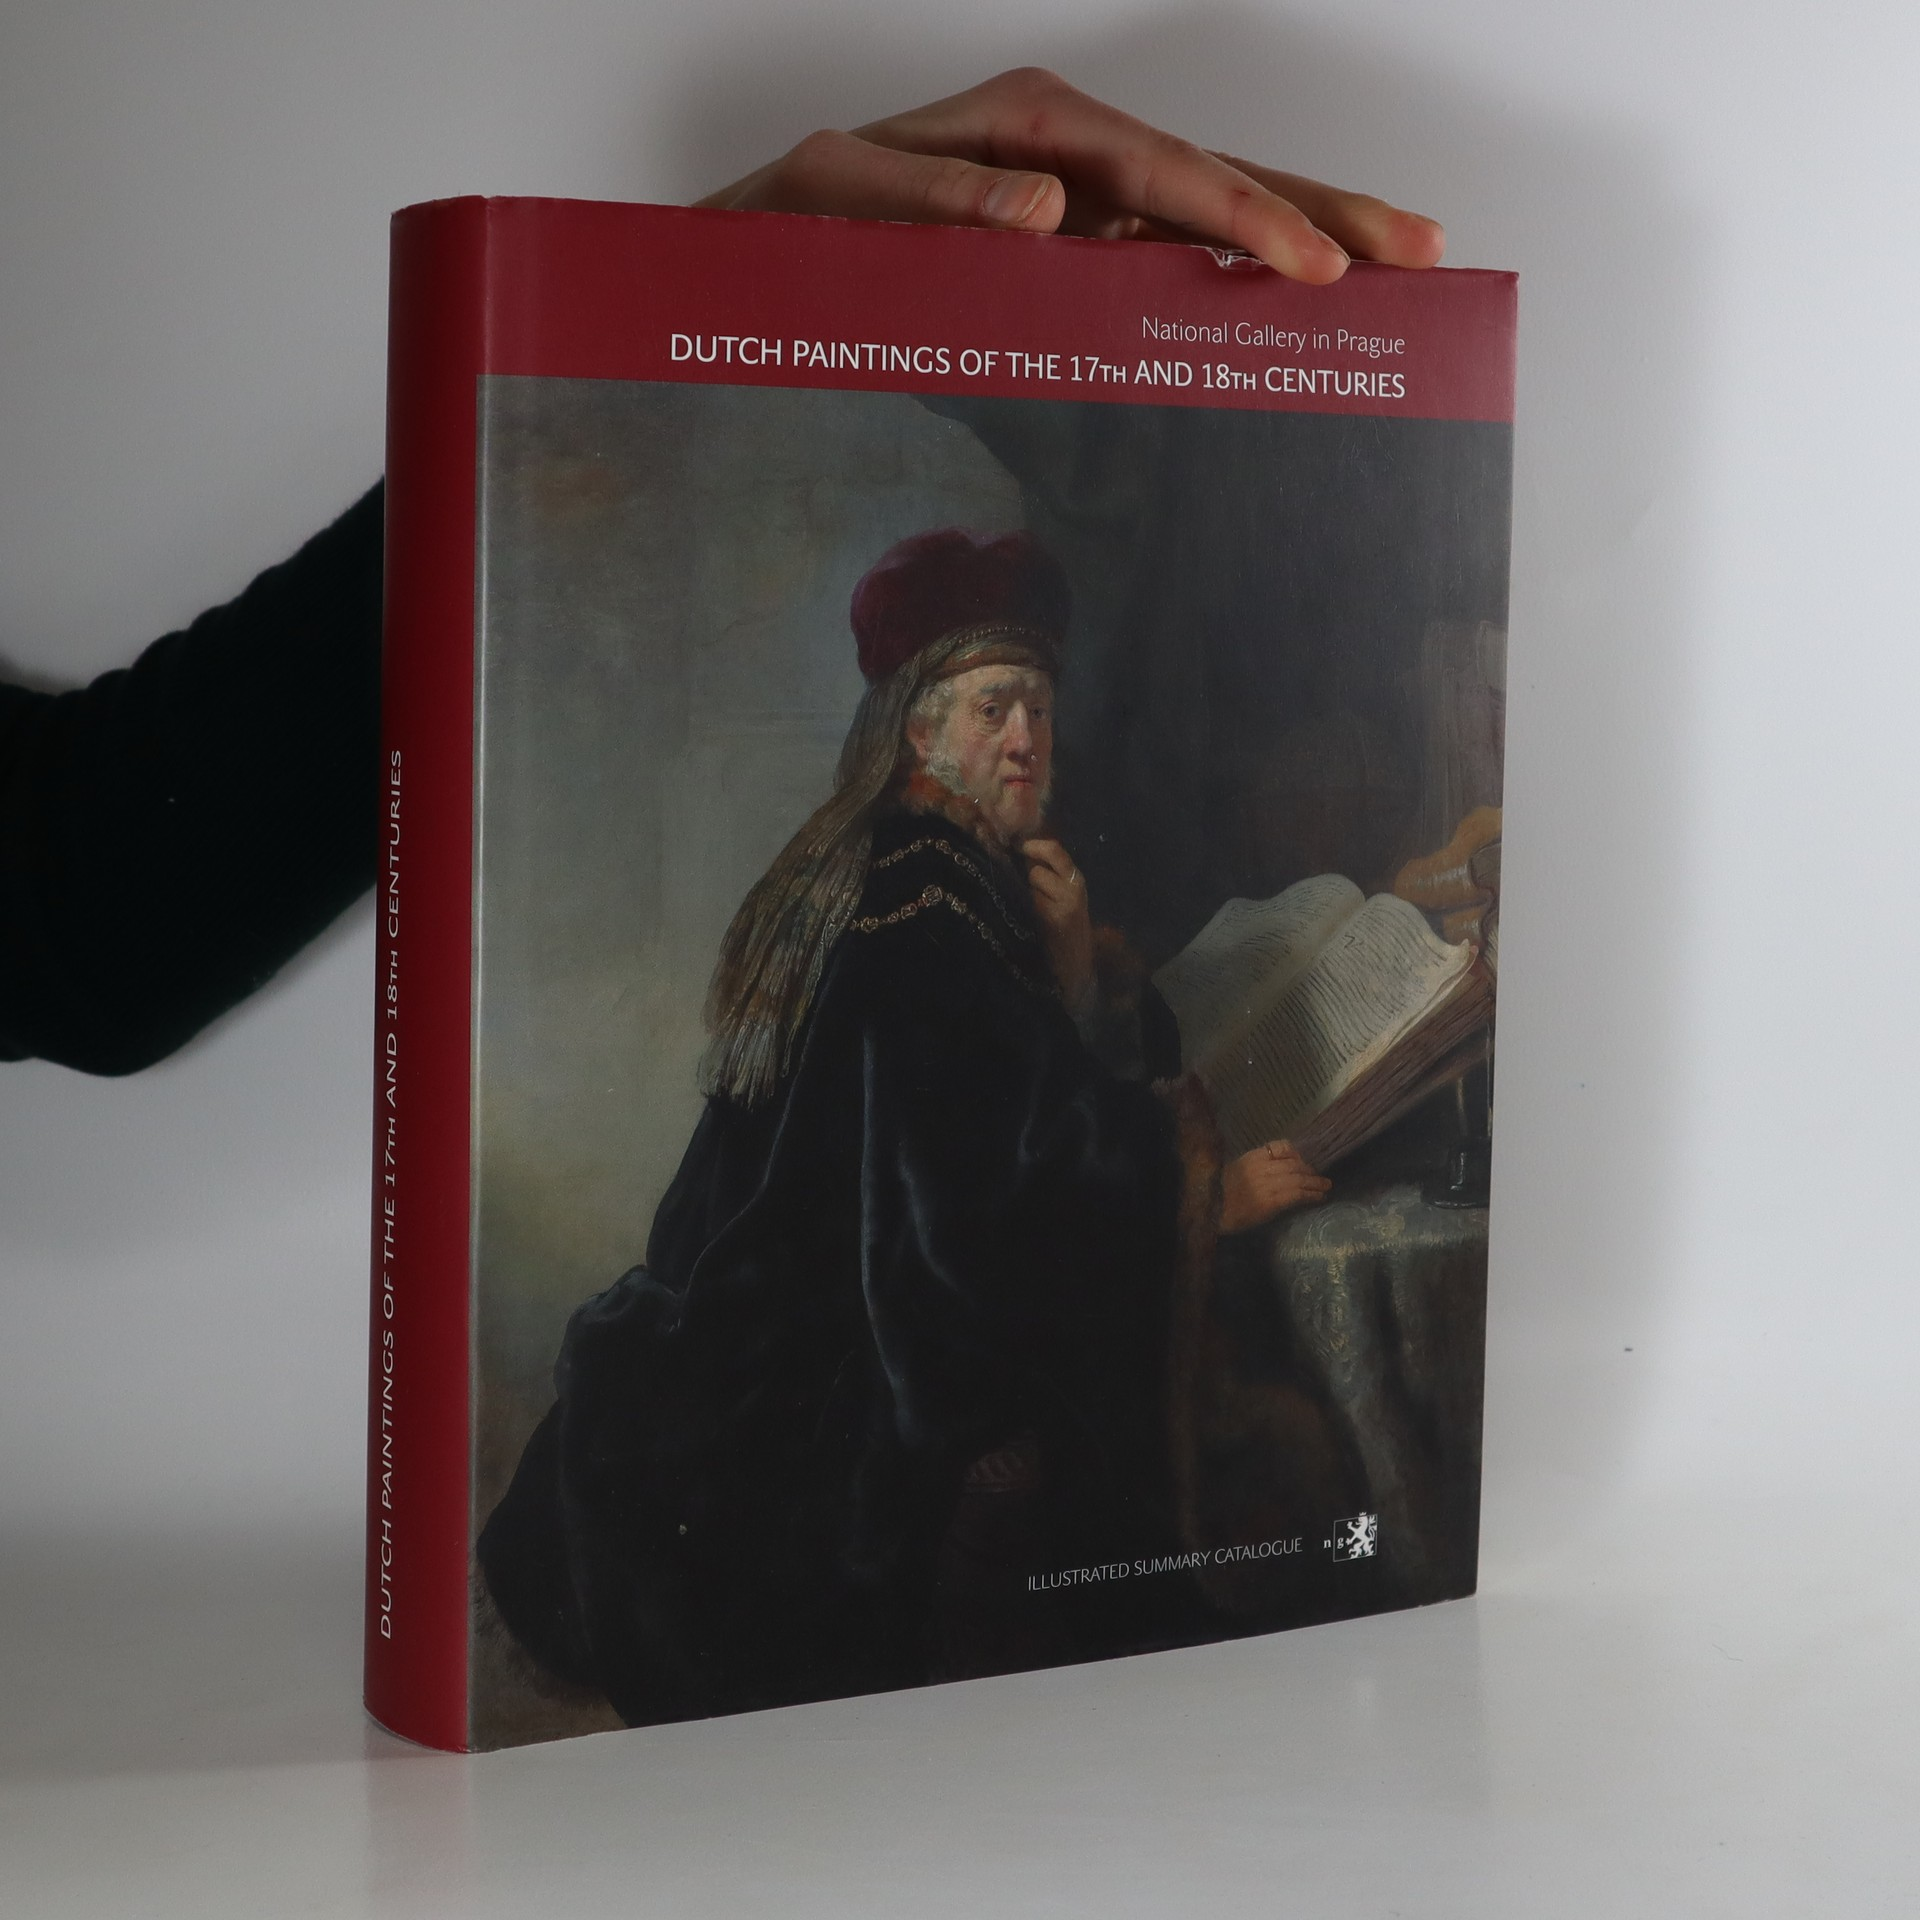 antikvární kniha Dutch paintings of the 17th and 18th centuries, 2012